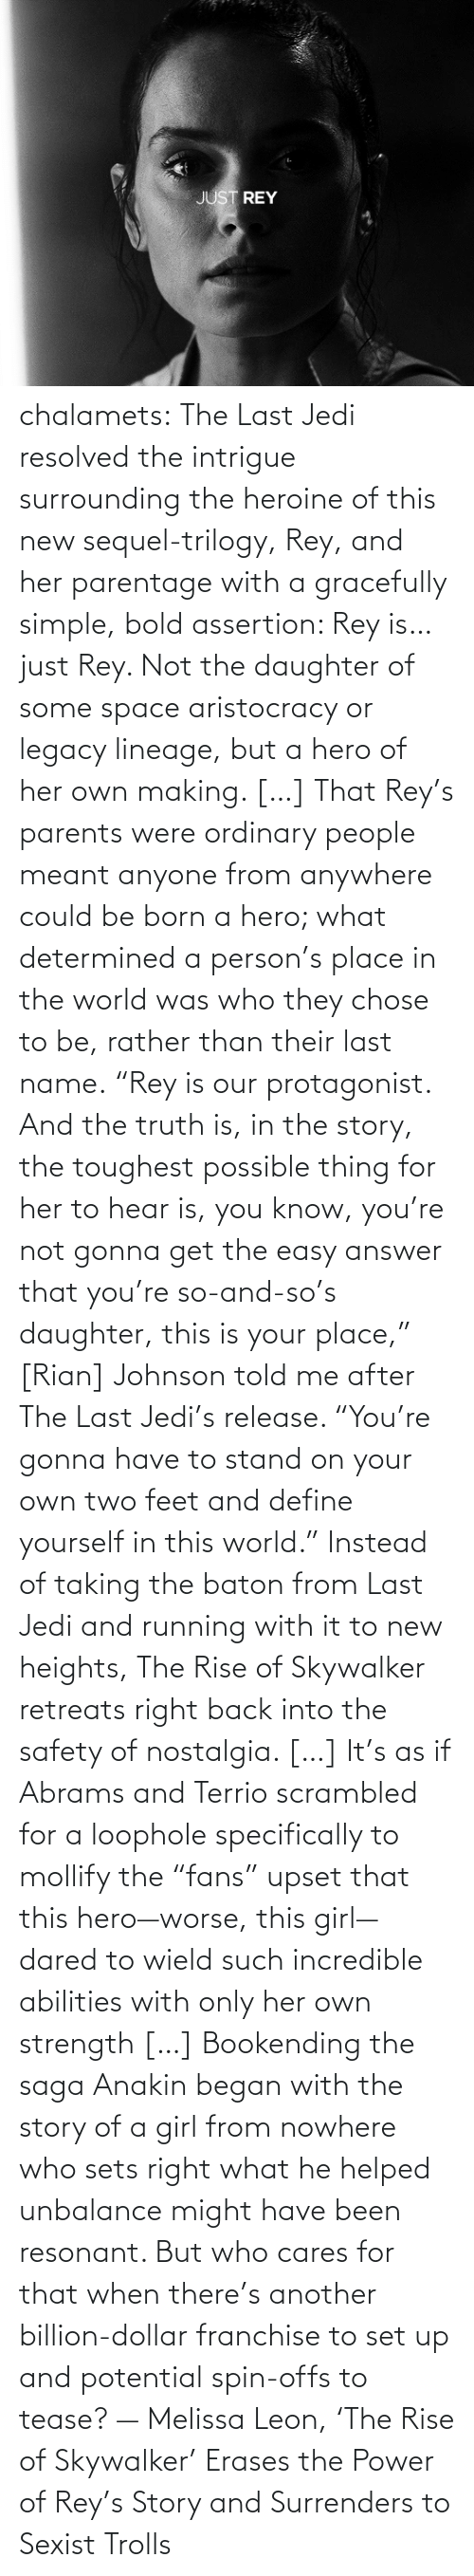 "Star Wars: chalamets:  The Last Jedi resolved the intrigue surrounding the heroine of this new sequel-trilogy, Rey, and her parentage with a gracefully simple, bold assertion: Rey is… just Rey. Not the daughter of some space aristocracy or legacy lineage, but a hero of her own making. […] That Rey's parents were ordinary people meant anyone from anywhere could be born a hero; what determined a person's place in the world was who they chose to be, rather than their last name. ""Rey is our protagonist. And the truth is, in the story, the toughest possible thing for her to hear is, you know, you're not gonna get the easy answer that you're so-and-so's daughter, this is your place,"" [Rian] Johnson told me after The Last Jedi's release. ""You're gonna have to stand on your own two feet and define yourself in this world."" Instead of taking the baton from Last Jedi and running with it to new heights, The Rise of Skywalker retreats right back into the safety of nostalgia. […] It's as if Abrams and Terrio scrambled for a loophole specifically to mollify the ""fans"" upset that this hero—worse, this girl—dared to wield such incredible abilities with only her own strength […] Bookending the saga Anakin began with the story of a girl from nowhere who sets right what he helped unbalance might have been resonant. But who cares for that when there's another billion-dollar franchise to set up and potential spin-offs to tease? — Melissa Leon, 'The Rise of Skywalker' Erases the Power of Rey's Story and Surrenders to Sexist Trolls"